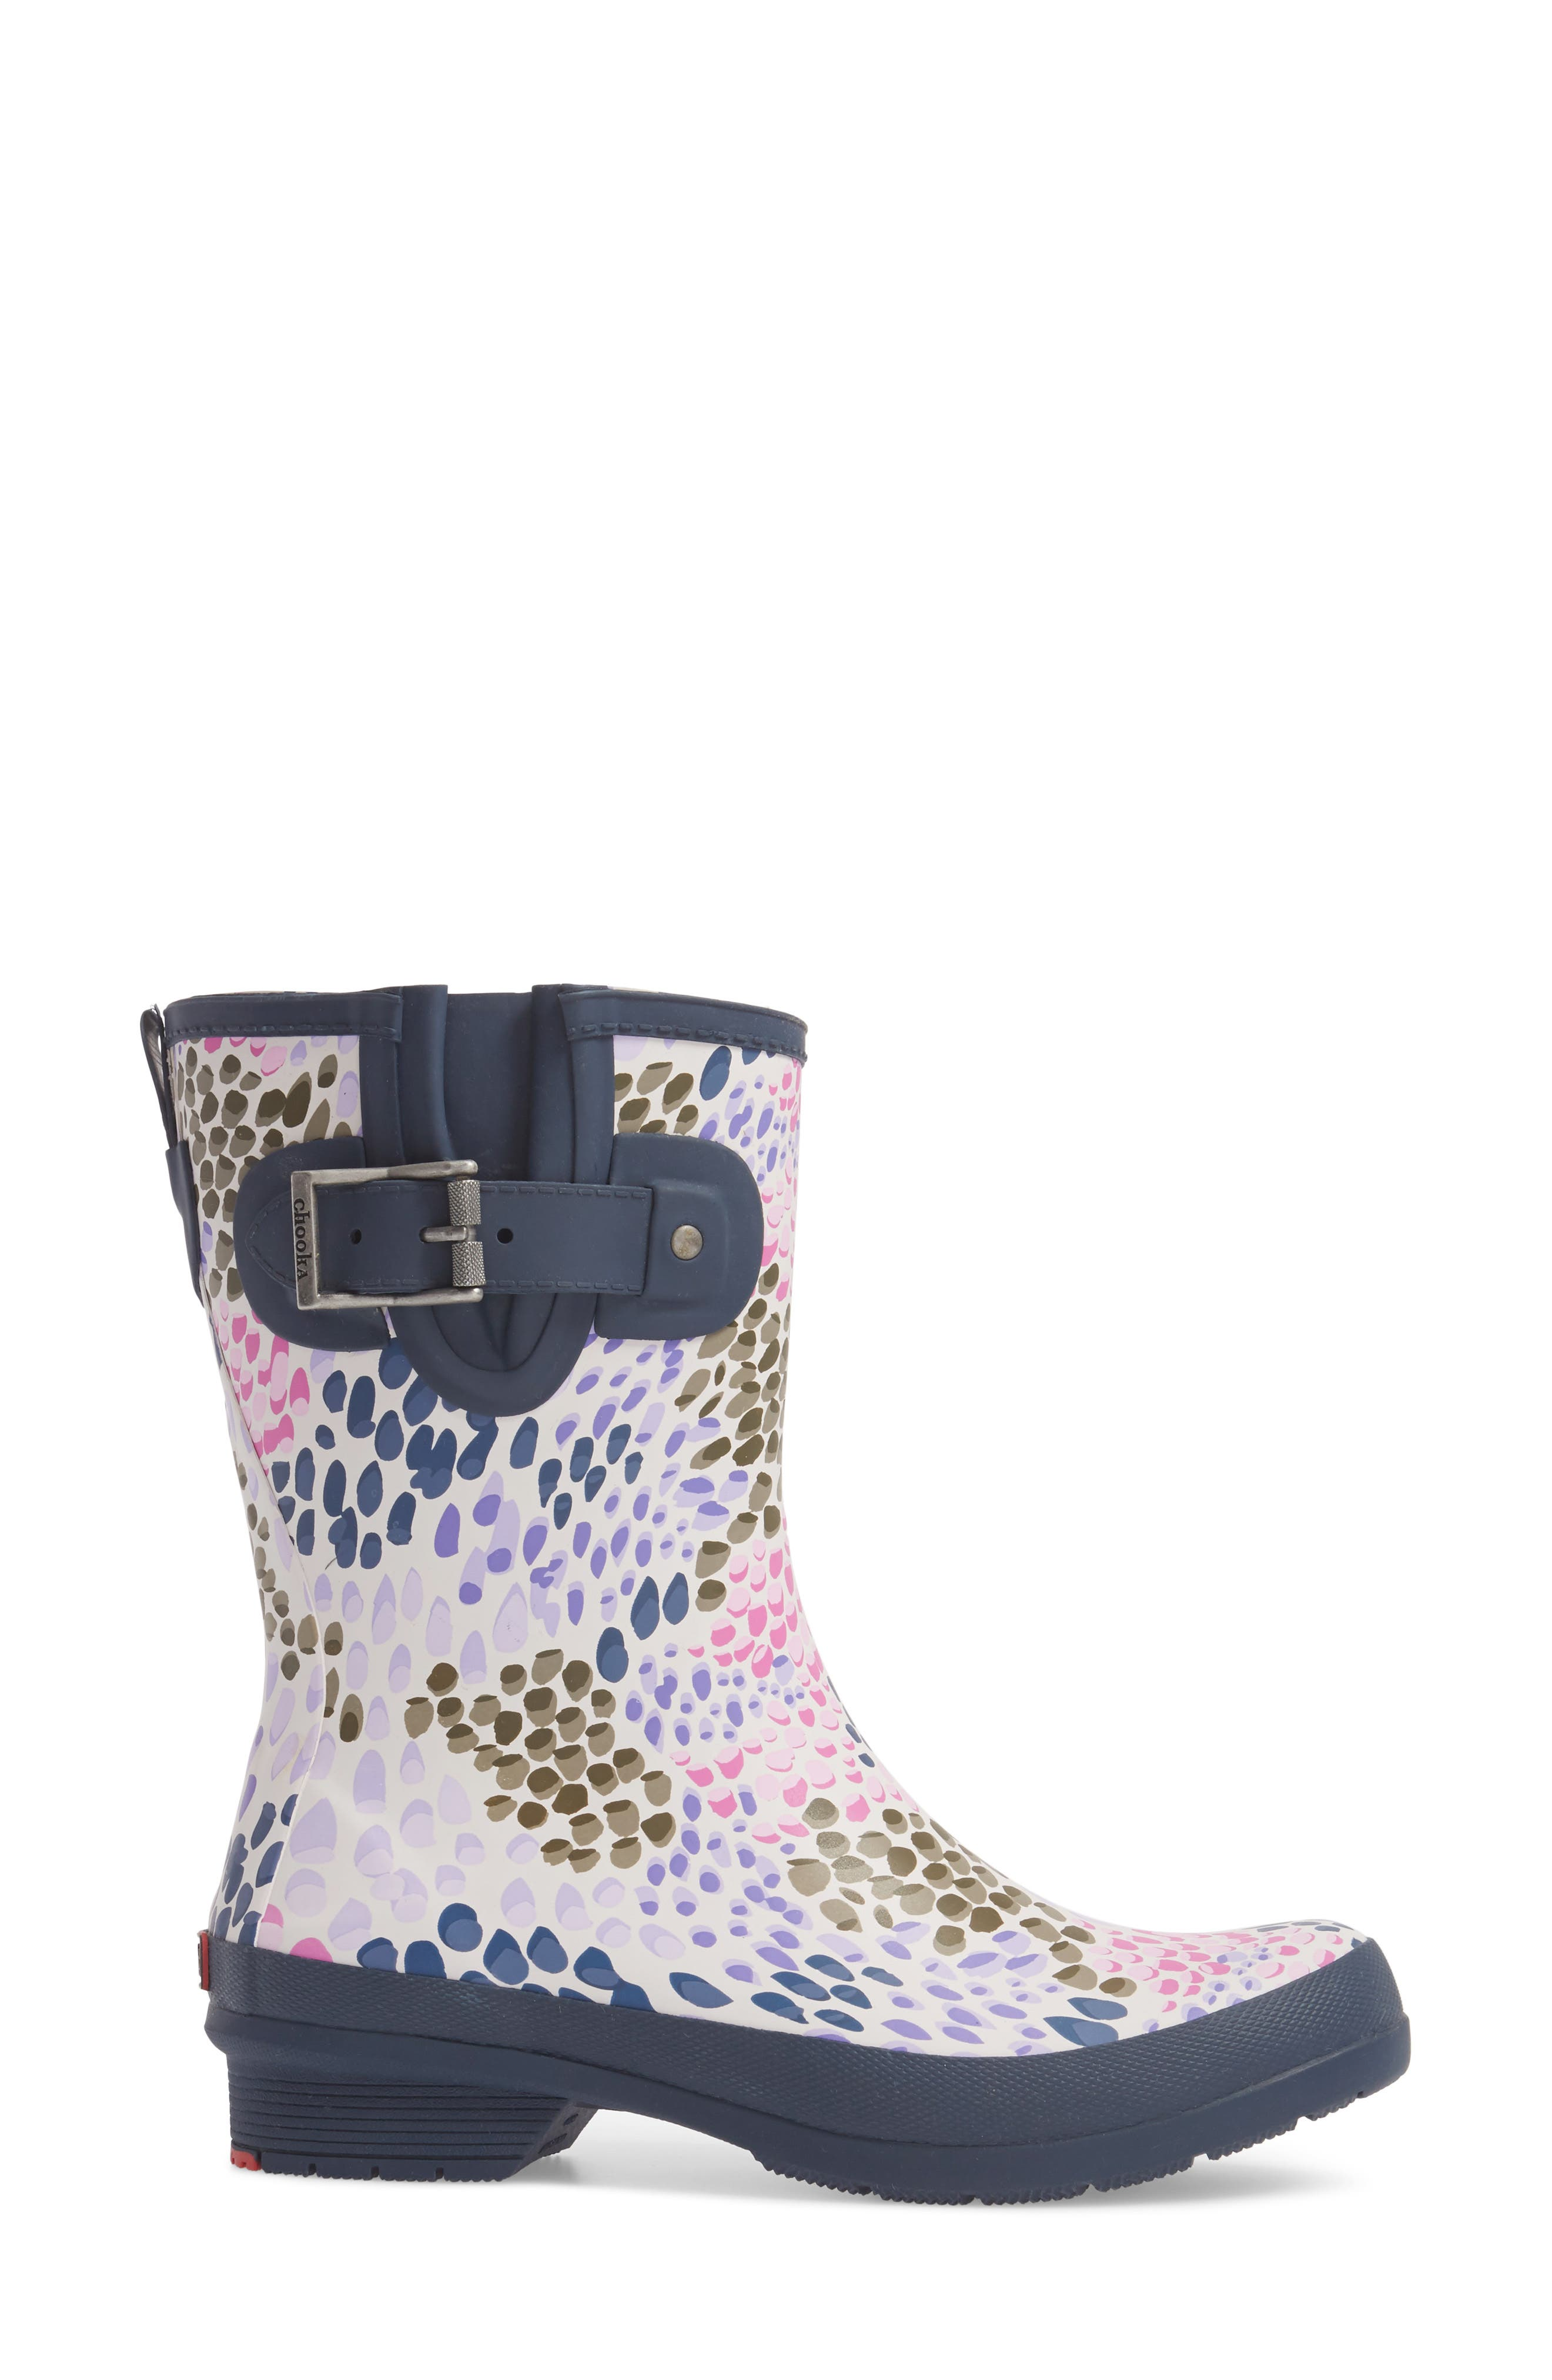 Tillie Mid Rain Boot,                             Alternate thumbnail 3, color,                             NAVY